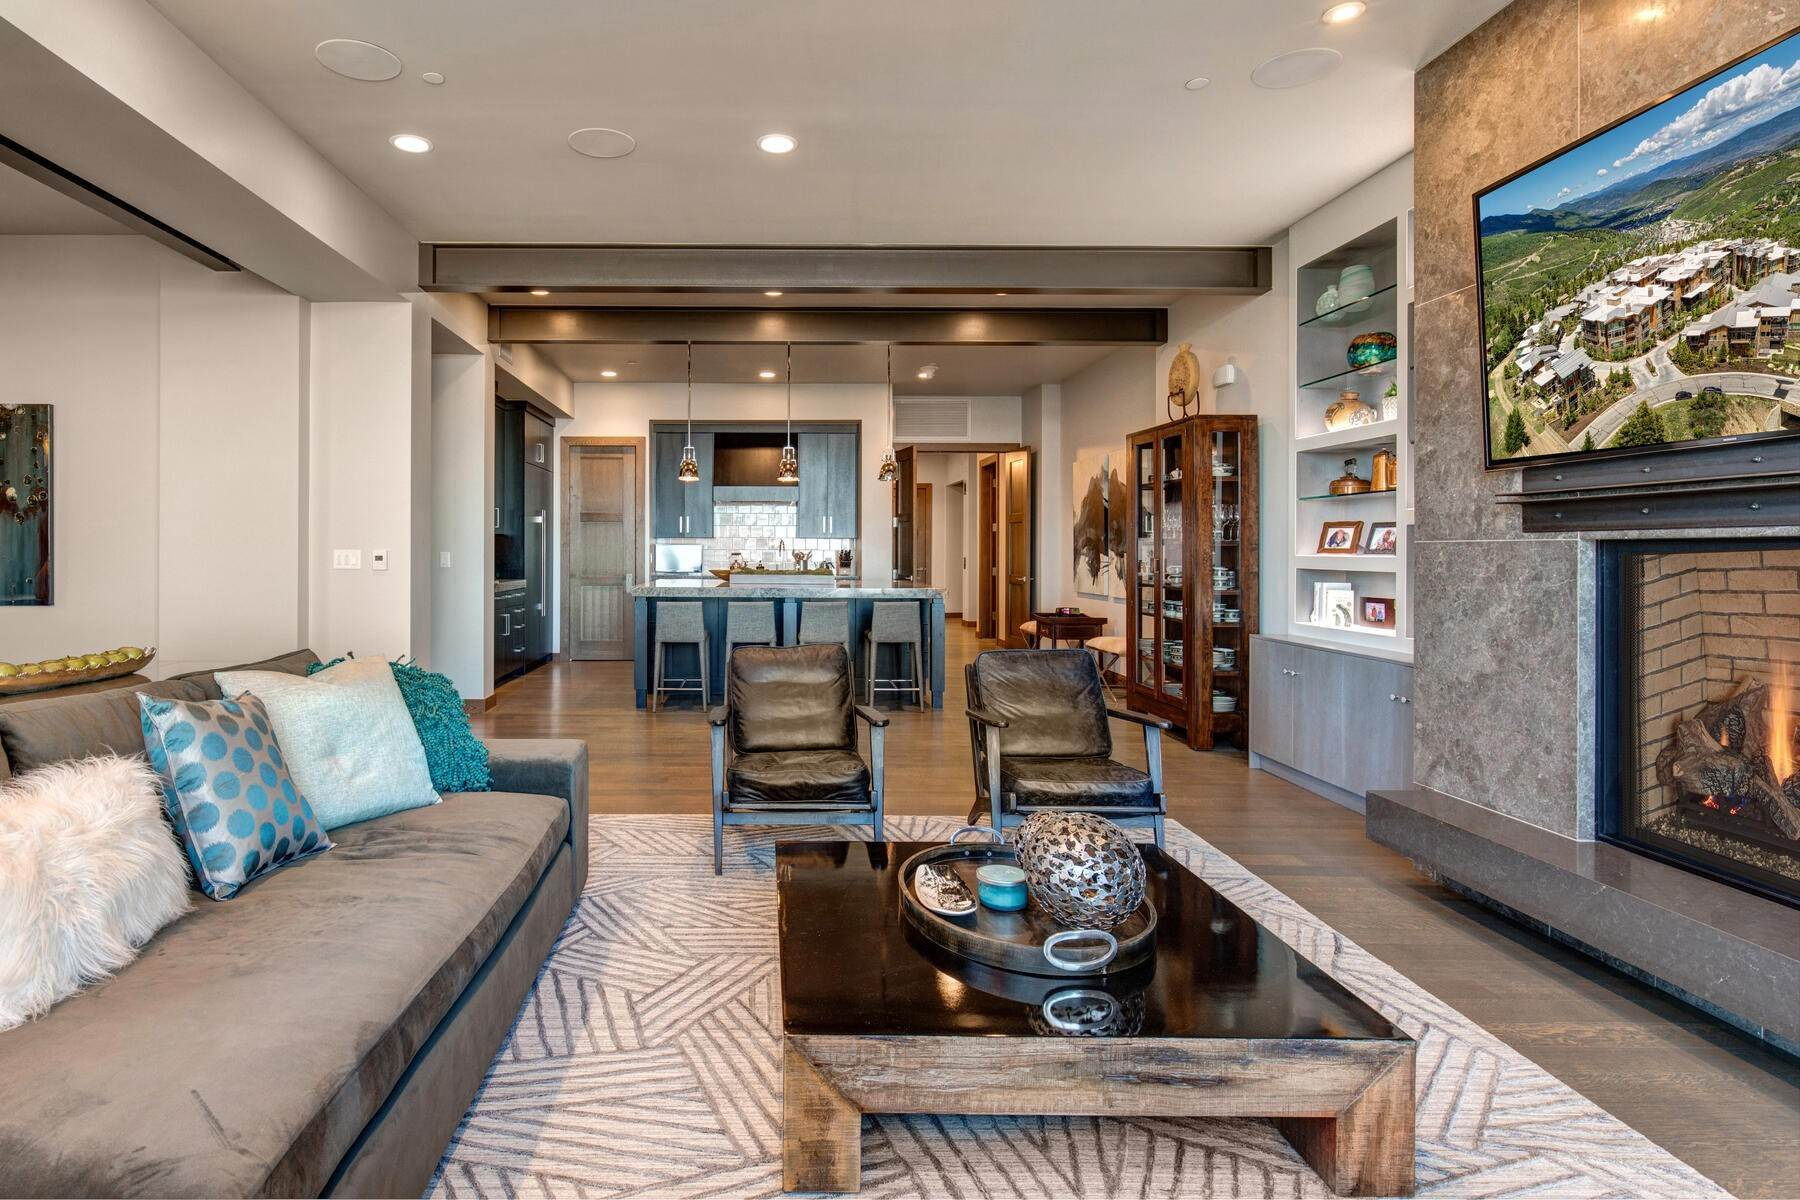 10. Condominiums for Sale at Ski-In Ski-Out Alpine Luxury Living at Stein Eriksen Residences 6702 Stein Circle #131 Park City, Utah 84060 United States